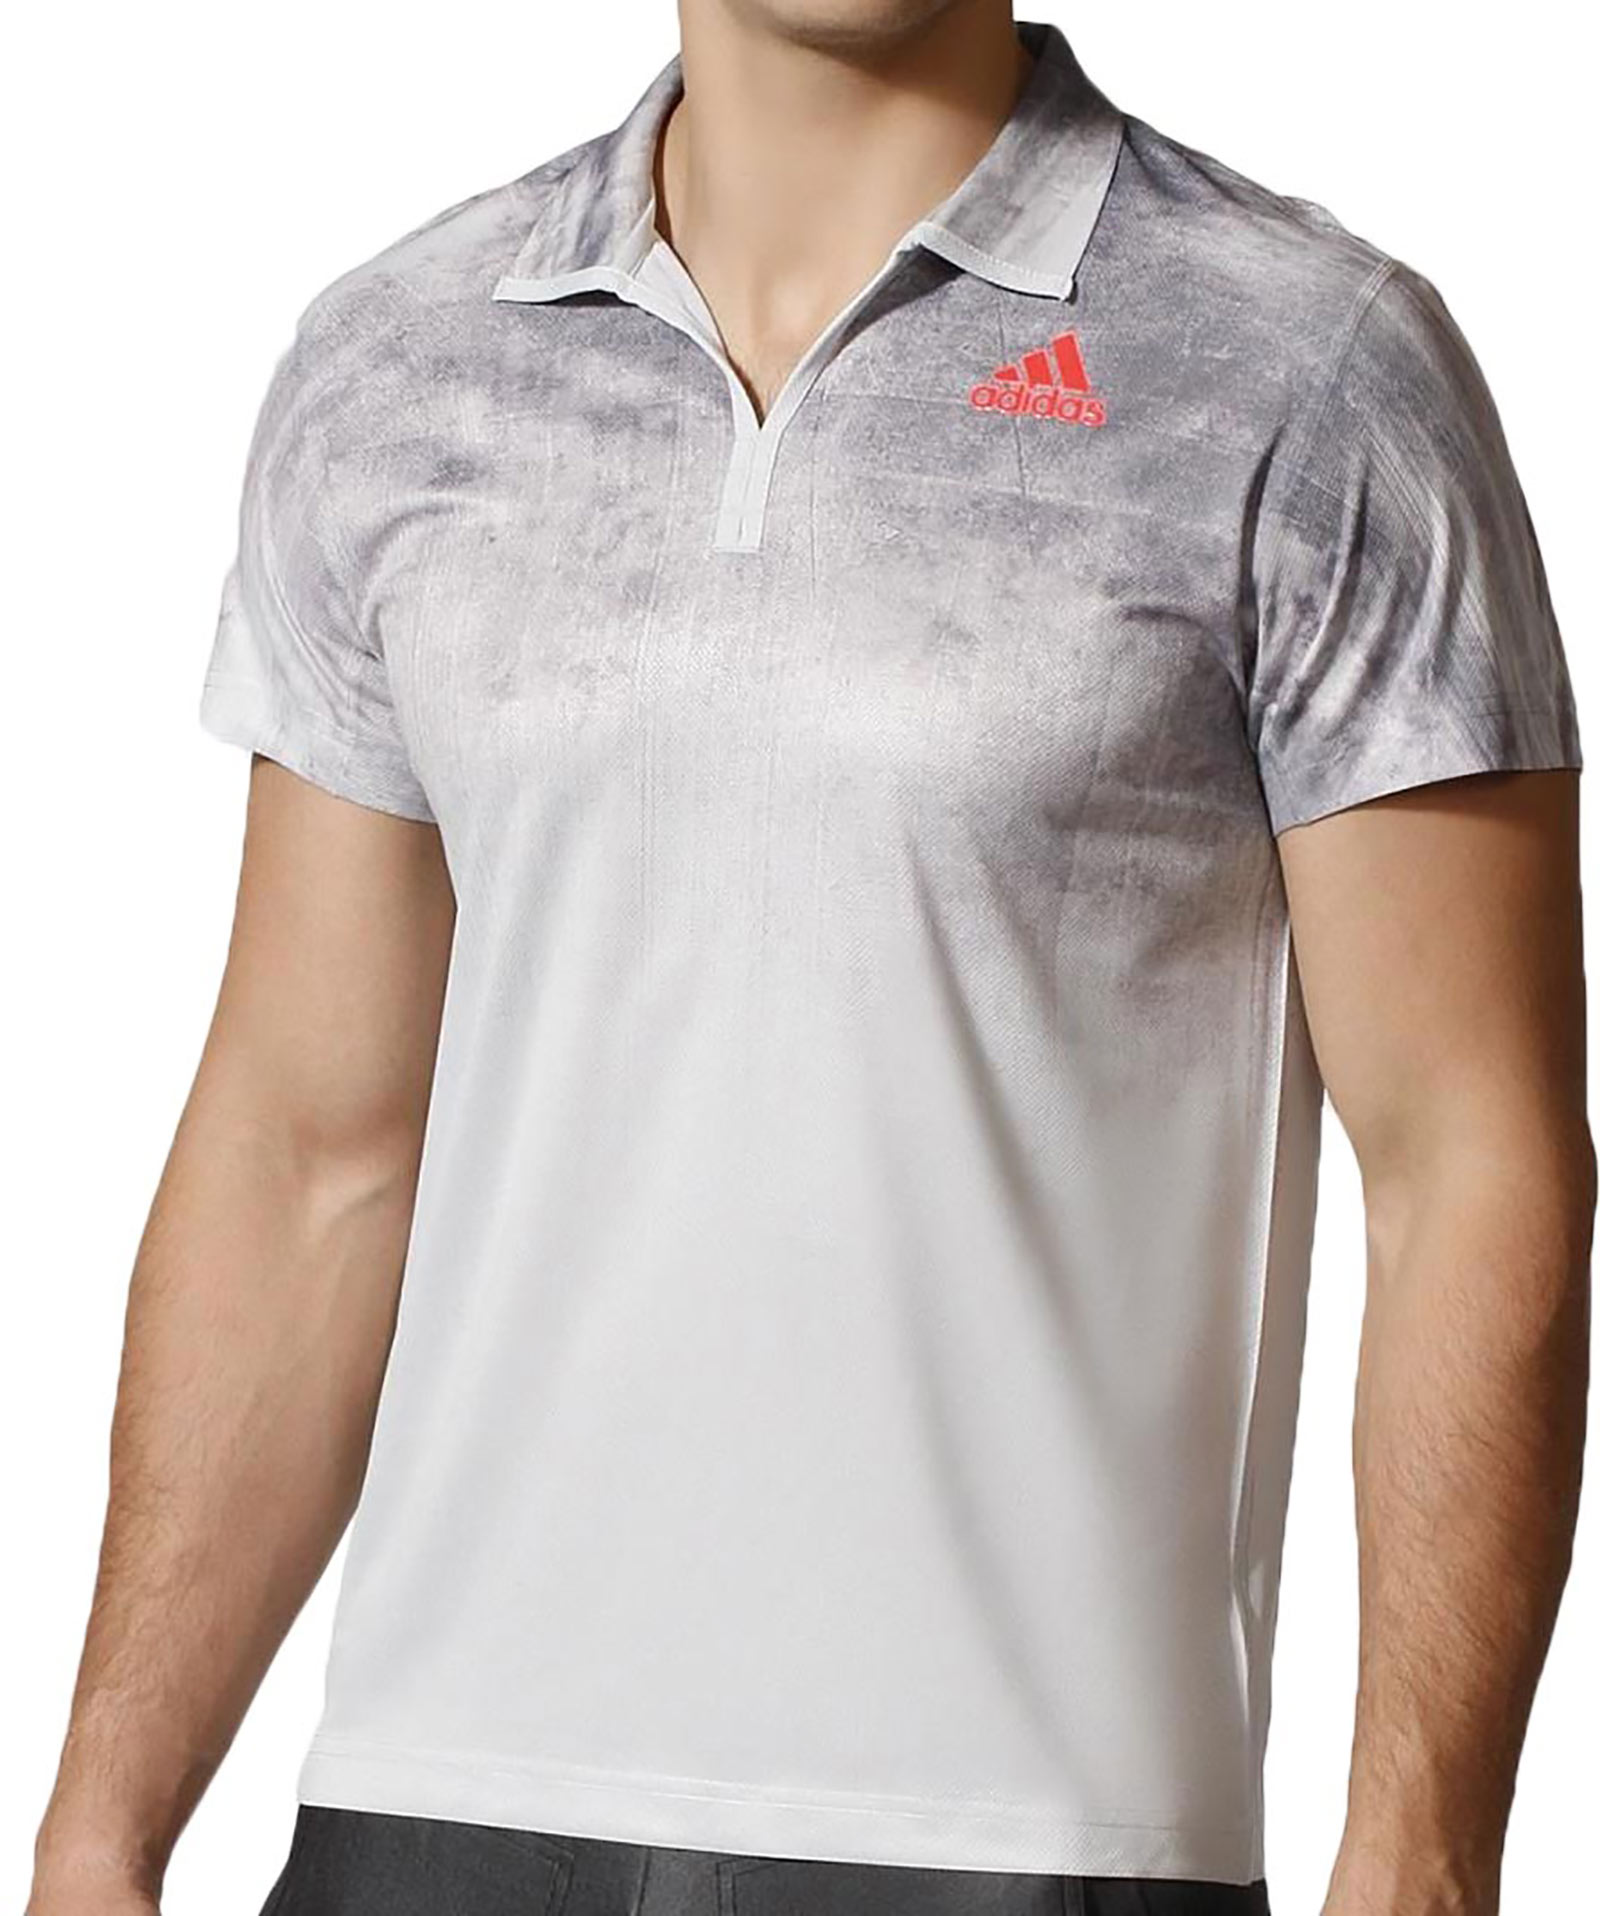 Adizero New Tennis Climalite Polo Size Shirt Mens Adidas M 6Hq5wz